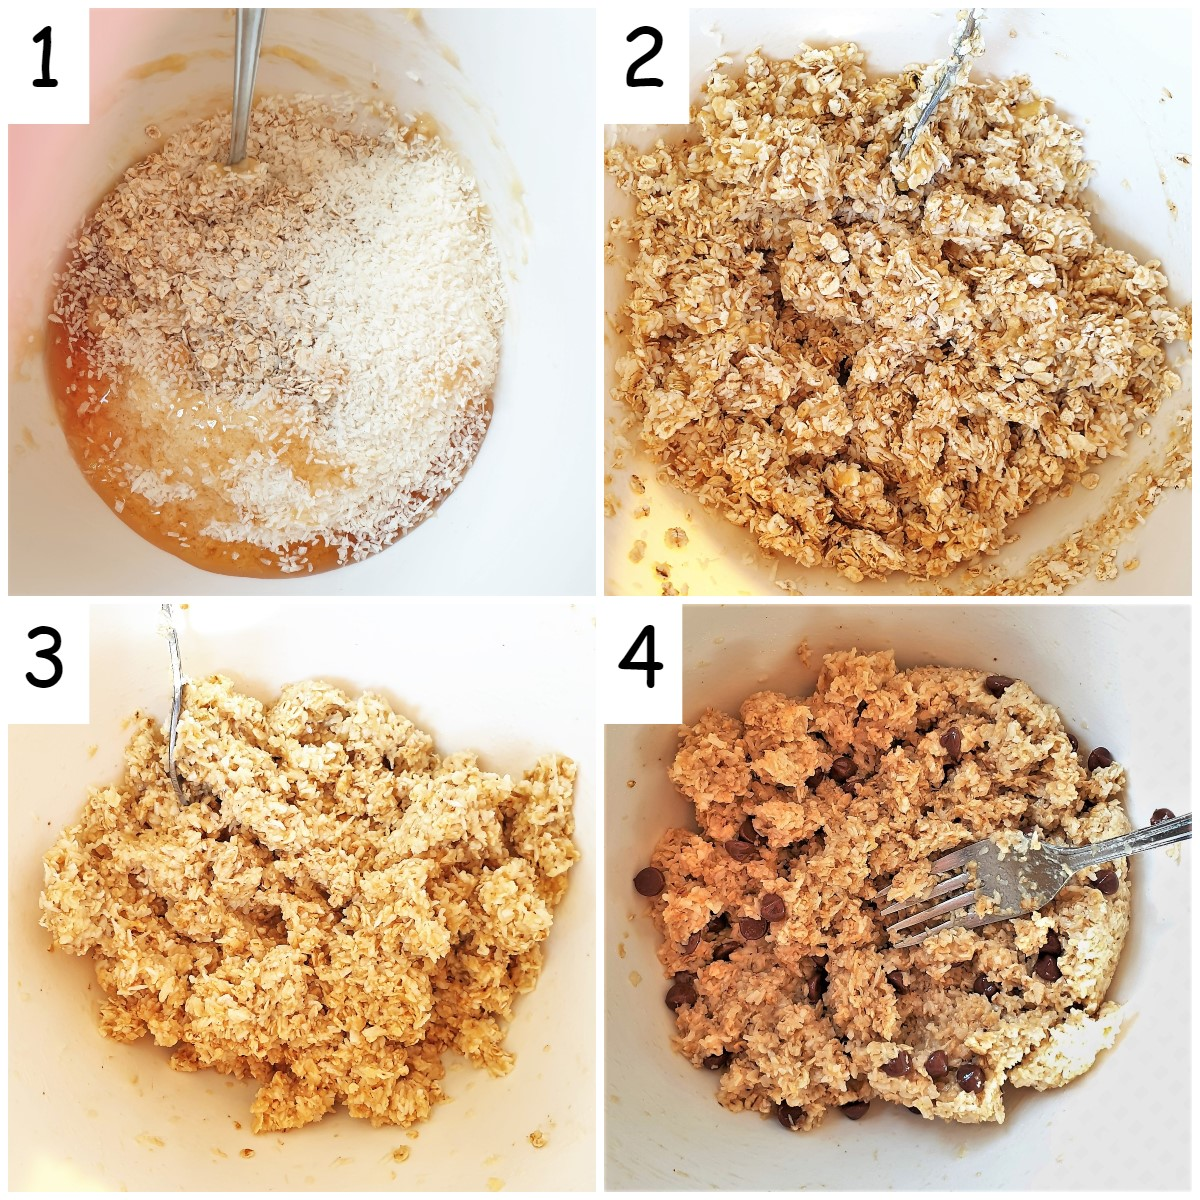 A collage of 4 images showing steps for mixing banana oat cakes